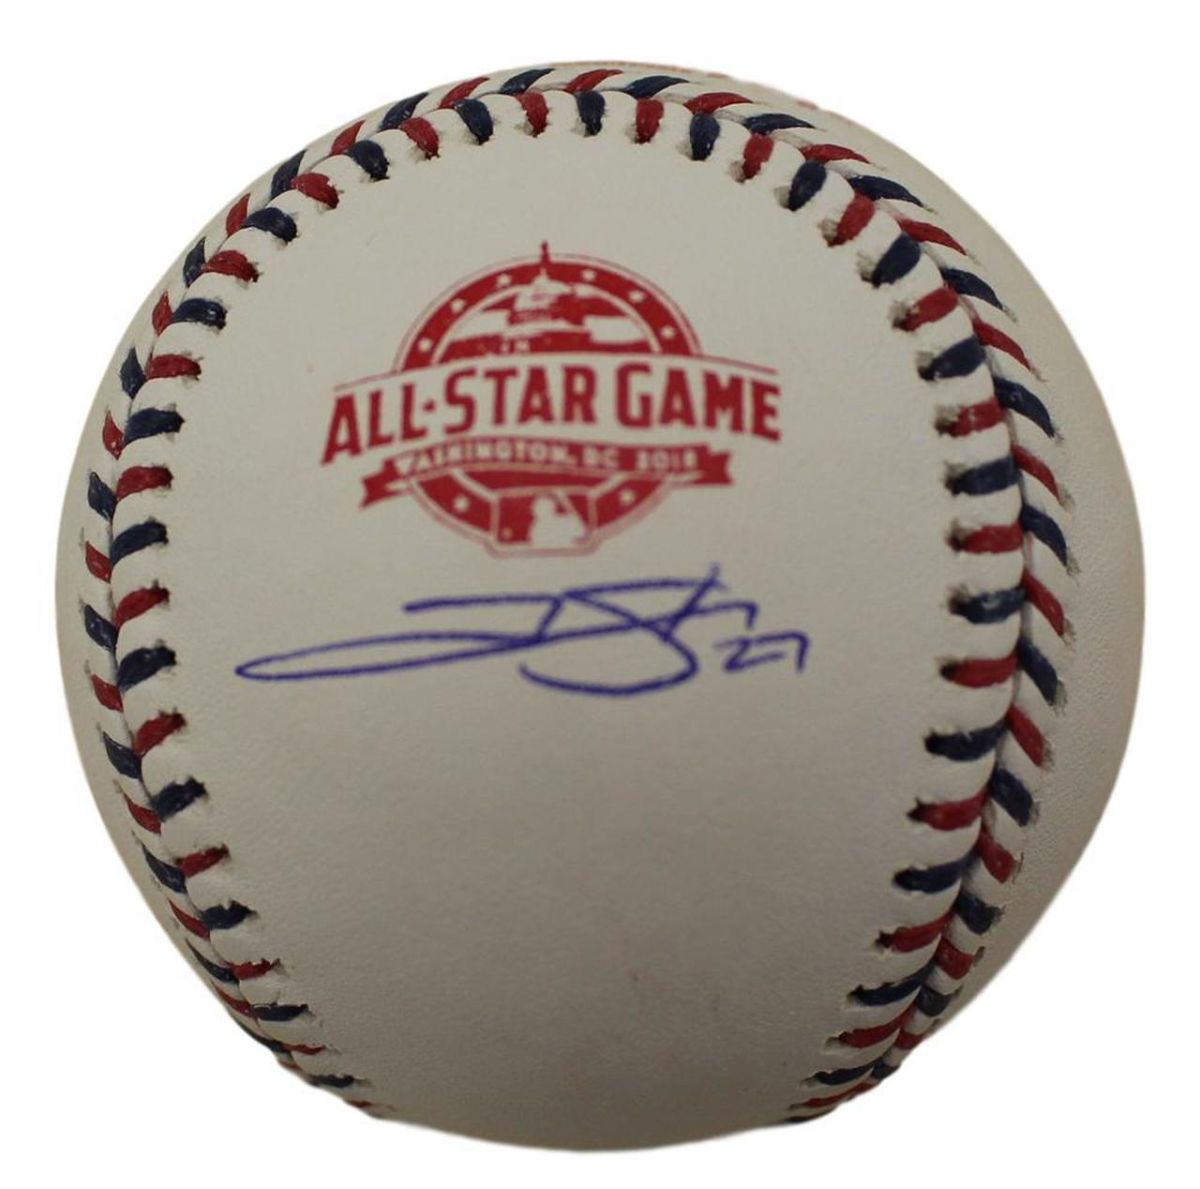 Trevor Story Autographed All Star Game and Gold Glove Baseballs - limited supplies of each! - https://t.co/jn3YopvfiT #MLB #ColoradoRockies All balls come with COA! https://t.co/RXrmtLLUt2